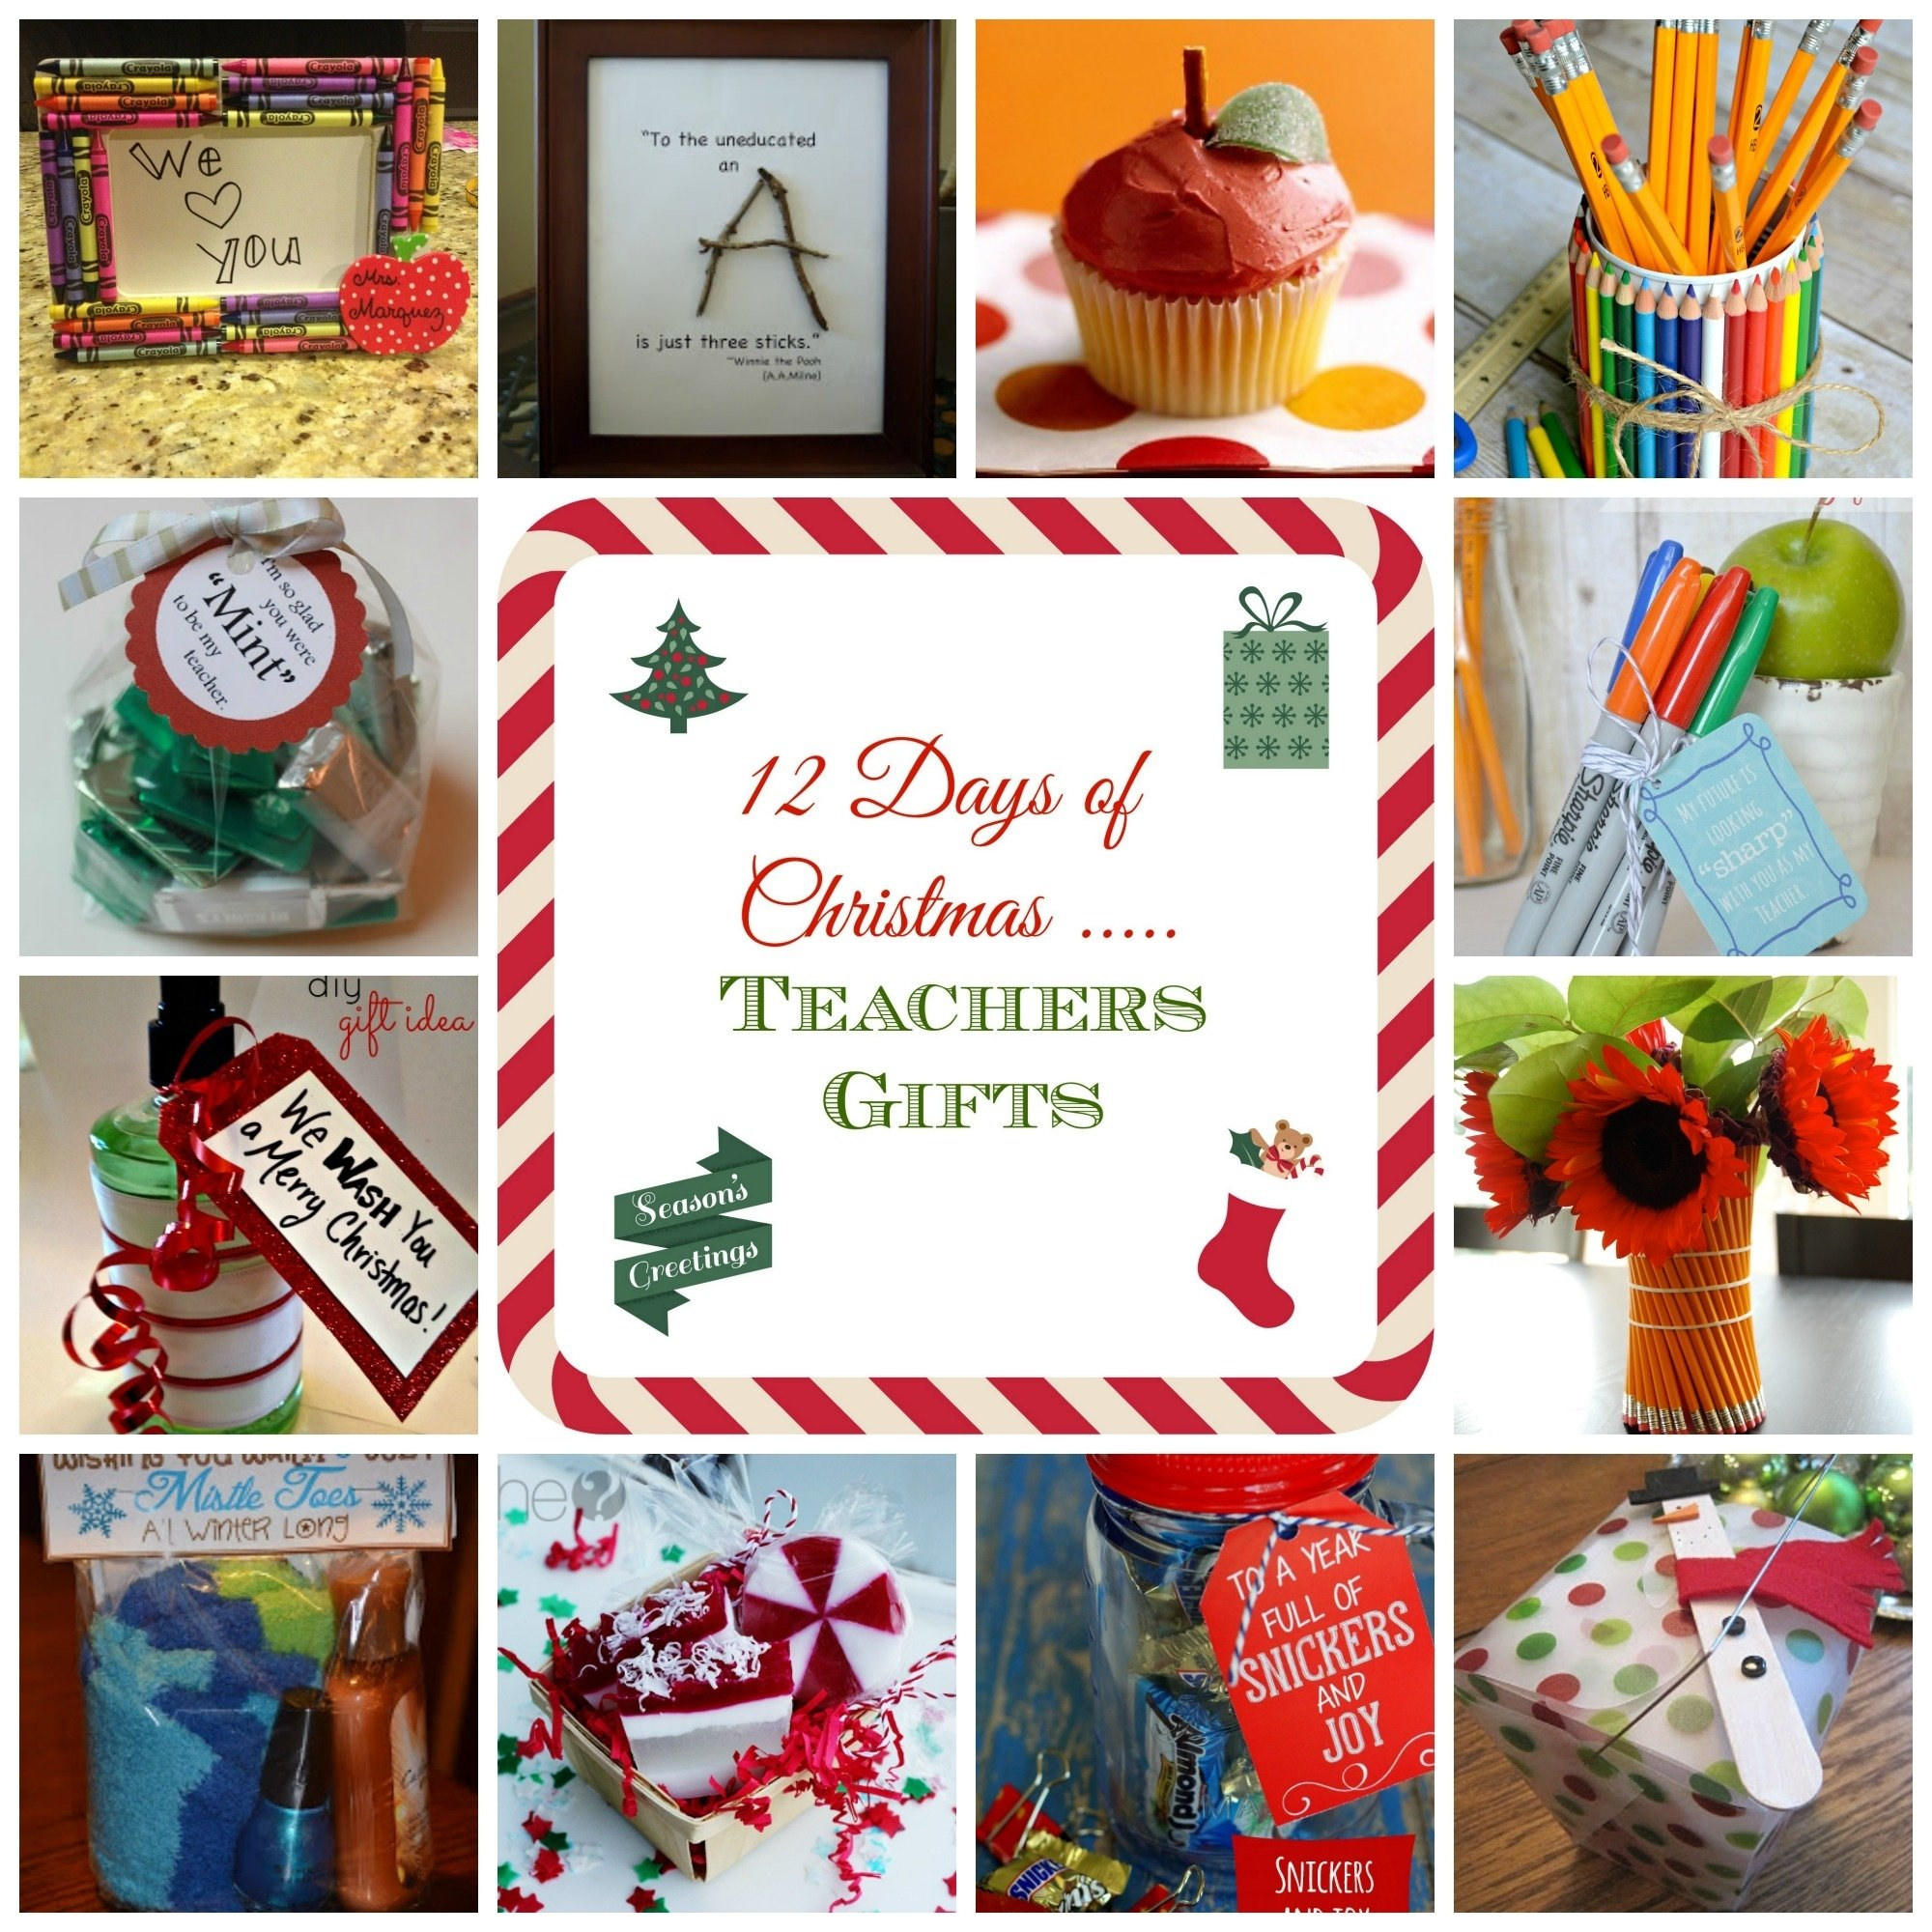 10 Nice Ideas For 12 Days Of Christmas 12 days of christmas teacher gift ideas donnahup 9 2020